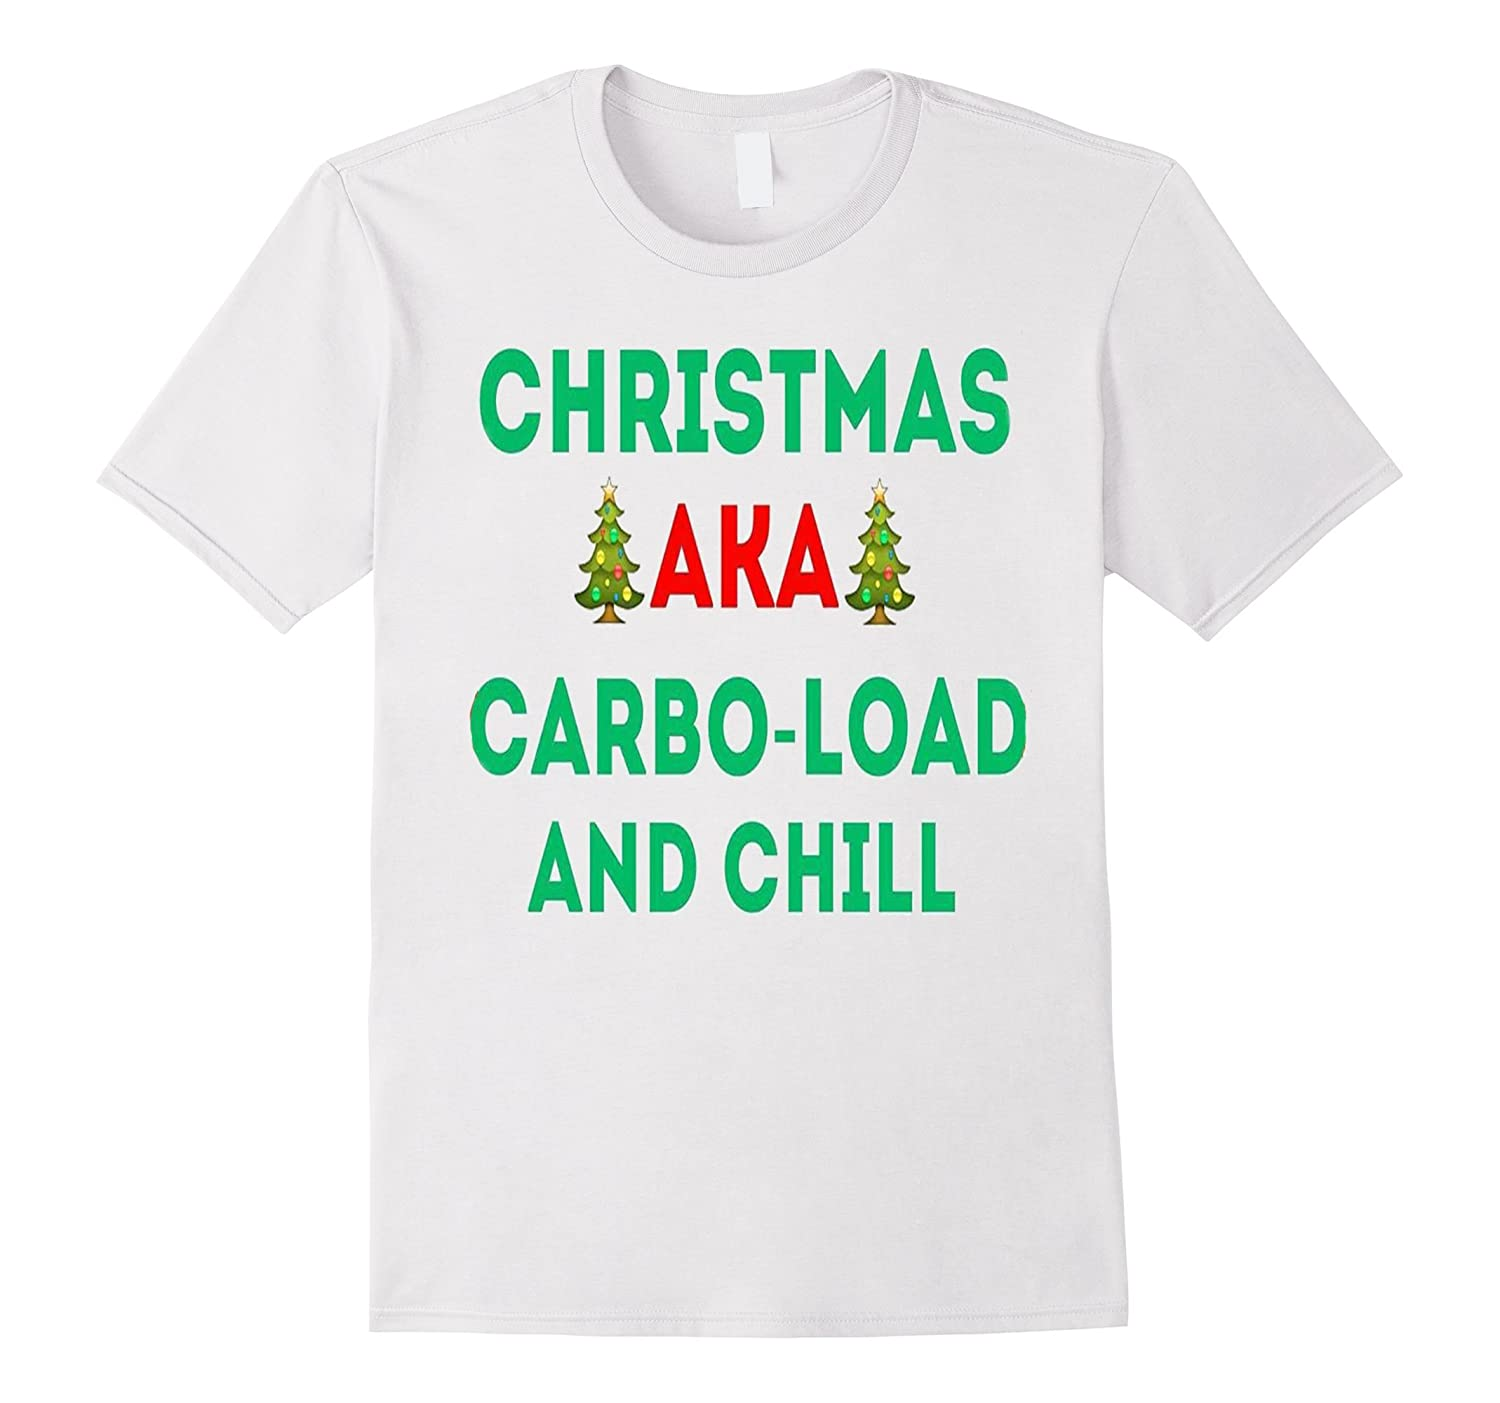 Christmas AKA Carbo-Load tshirt / T-shirt-Art